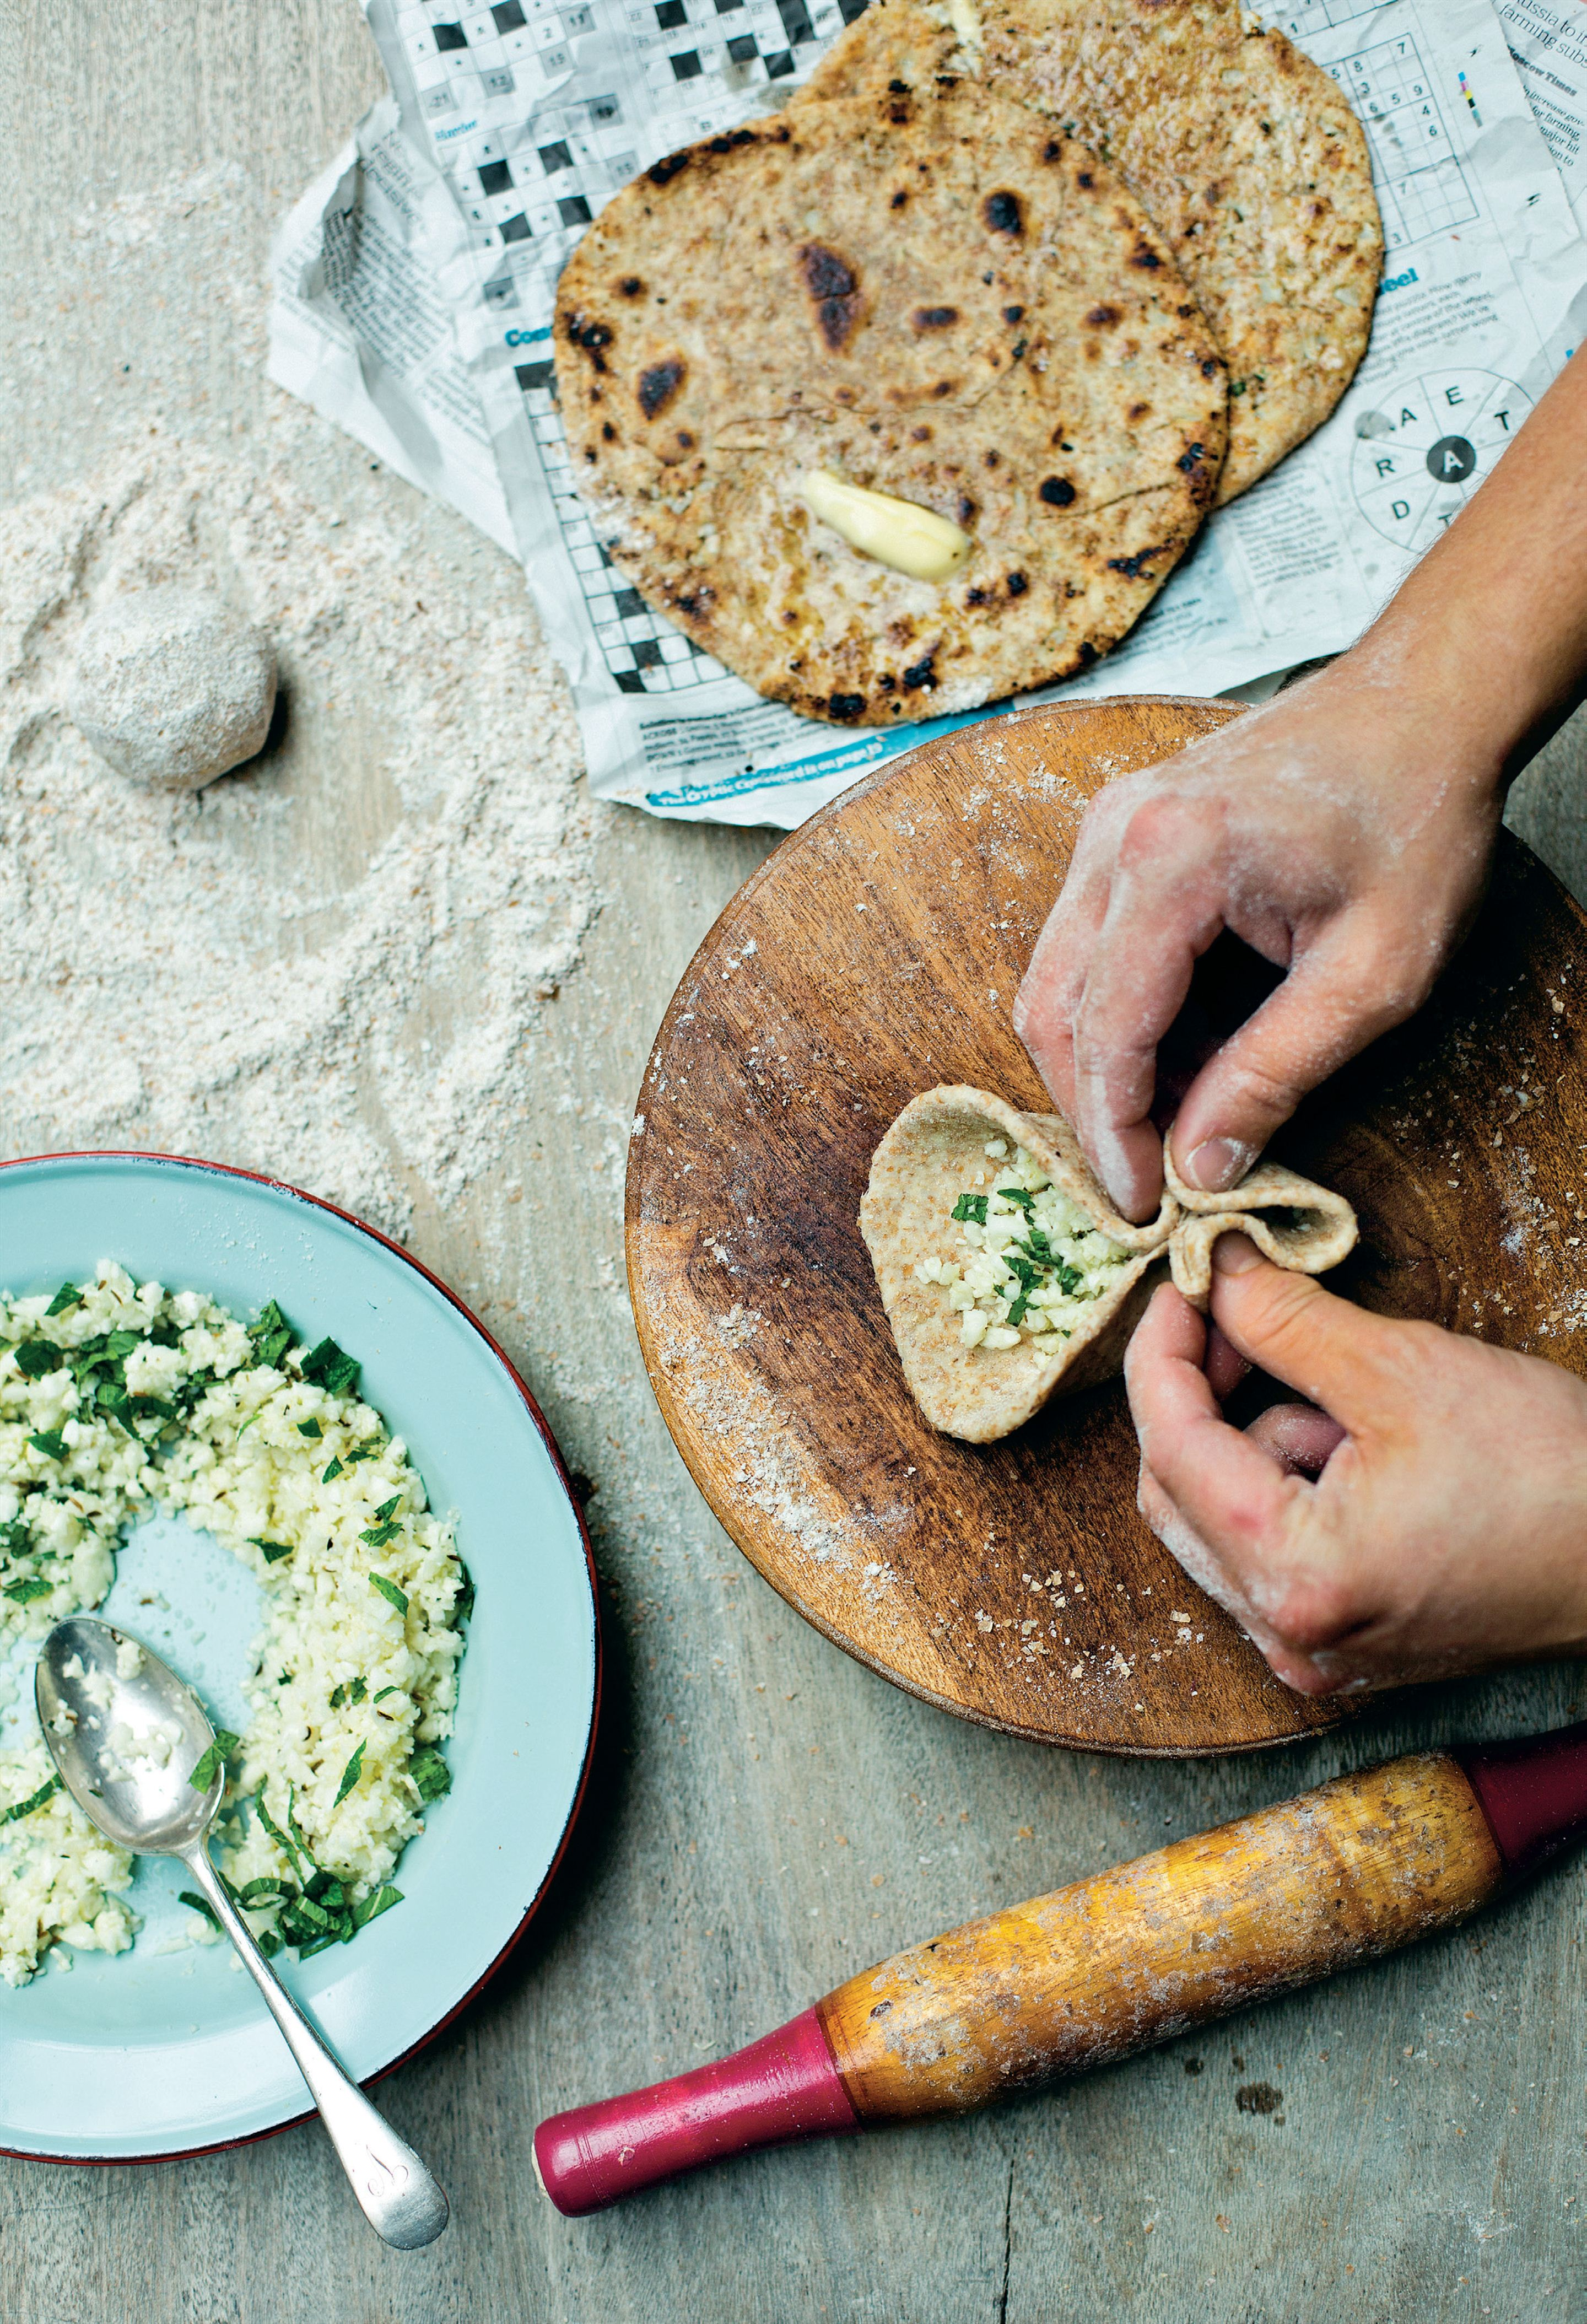 Cauliflower-stuffed parathas